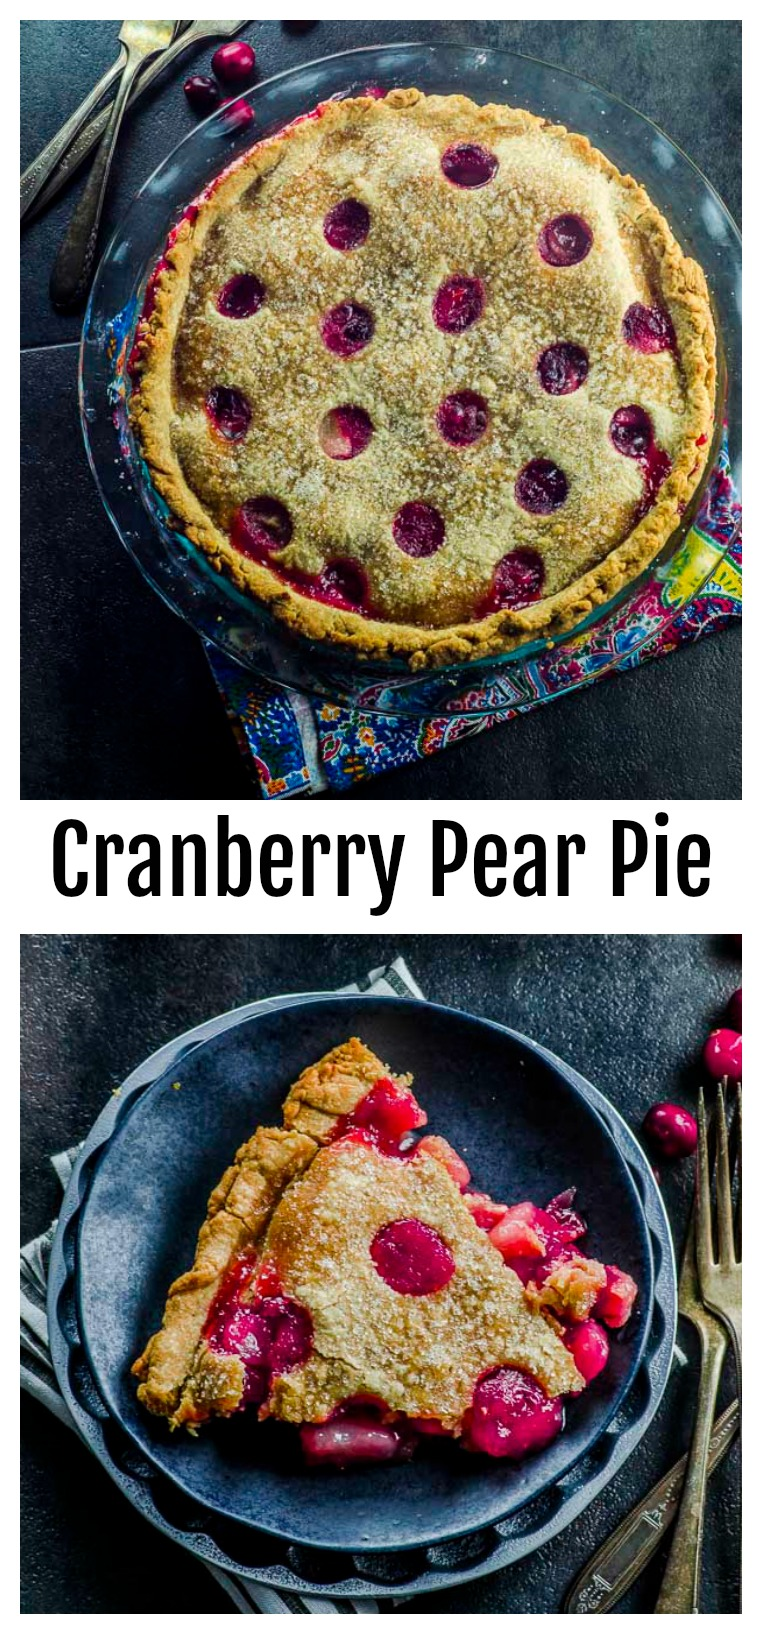 This vegan Cranberry Pear Pie is the perfect wait to end your Thanksgiving meal. With the right balance of sweet and tart, and pretty to look at! Check out our blog post for some useful tips!